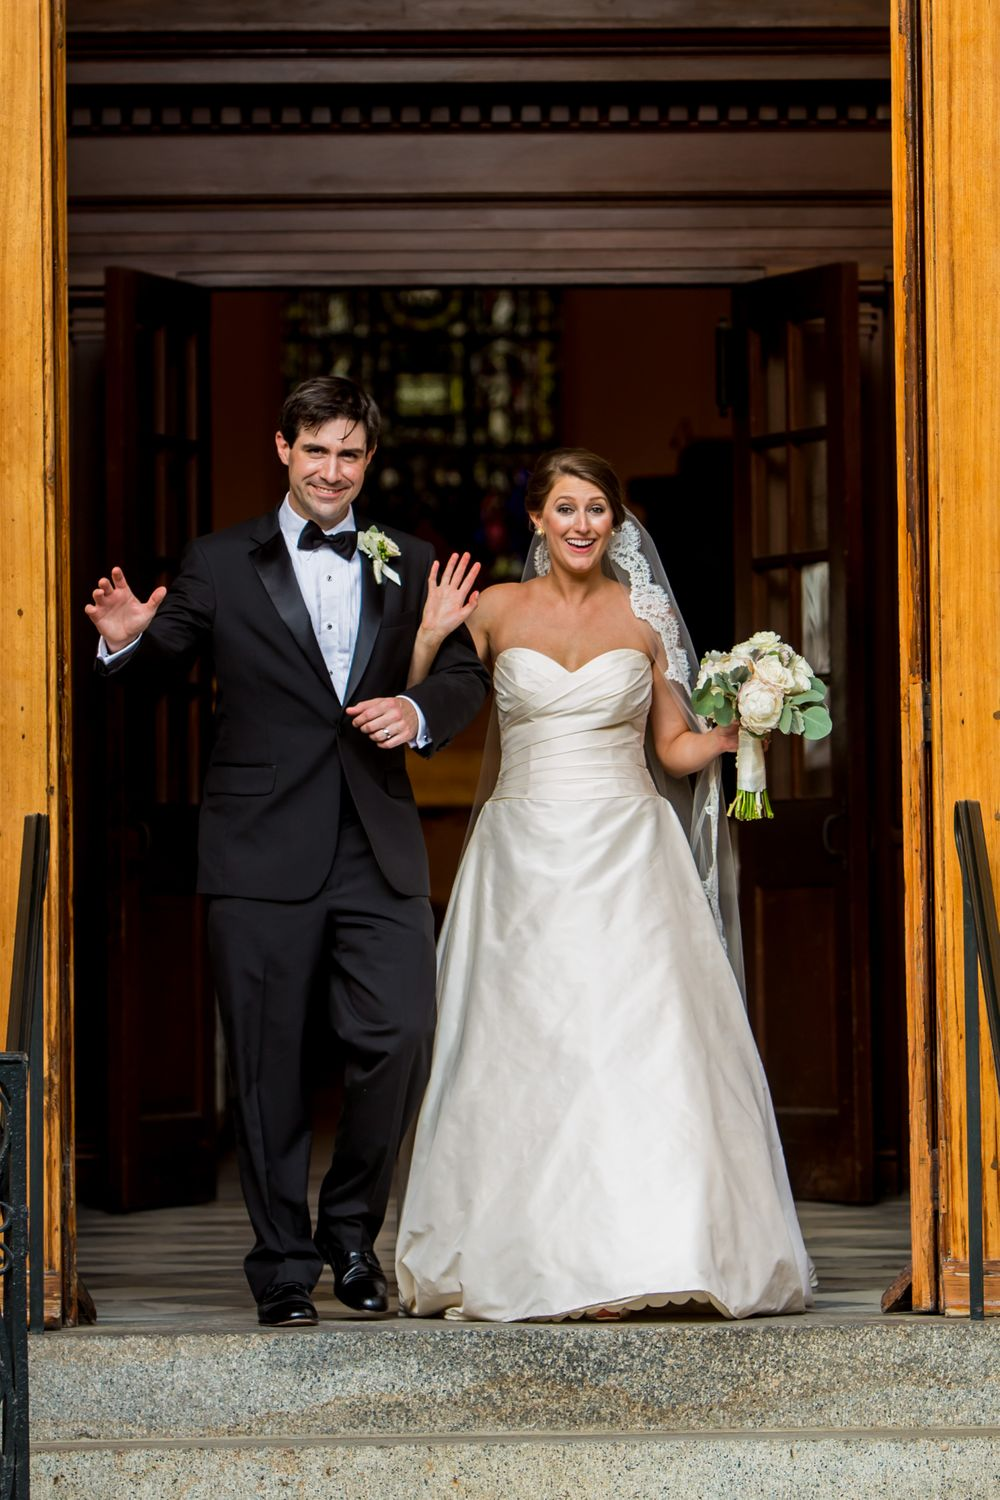 Bride Ashley and groom Ben exit their wedding at St. Philips Church in Charleston, SC